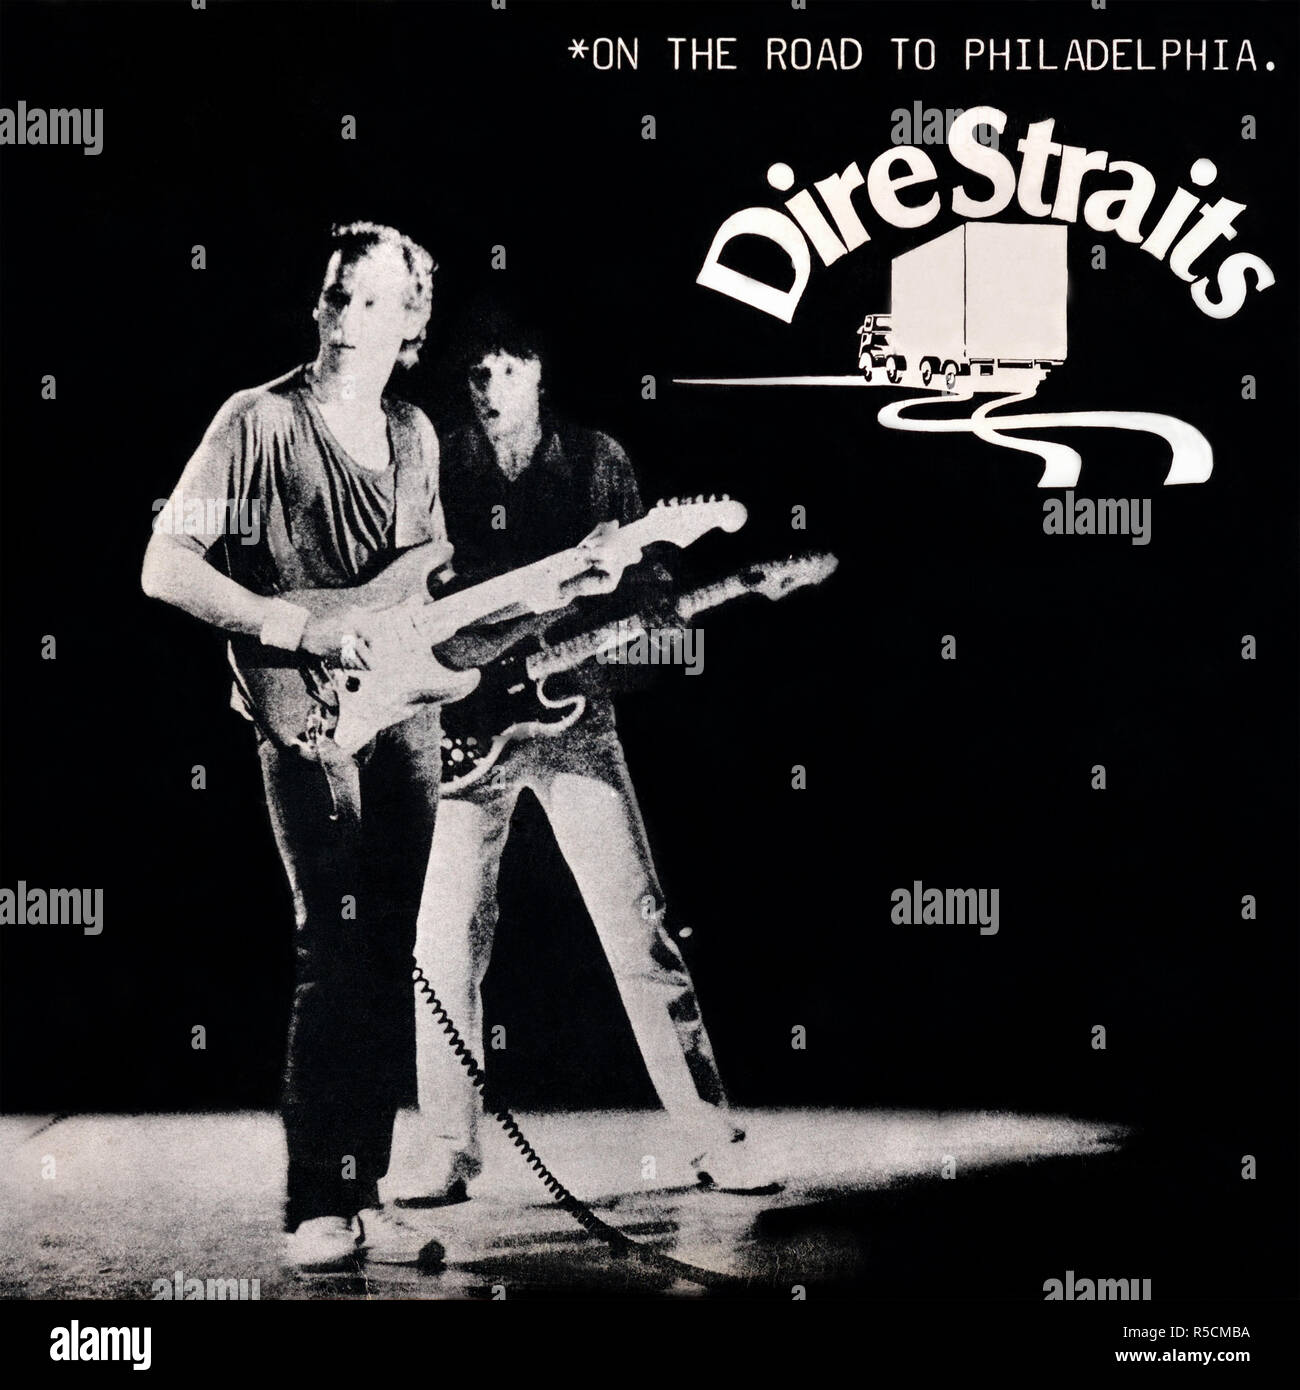 dire straits greatest hits album cover